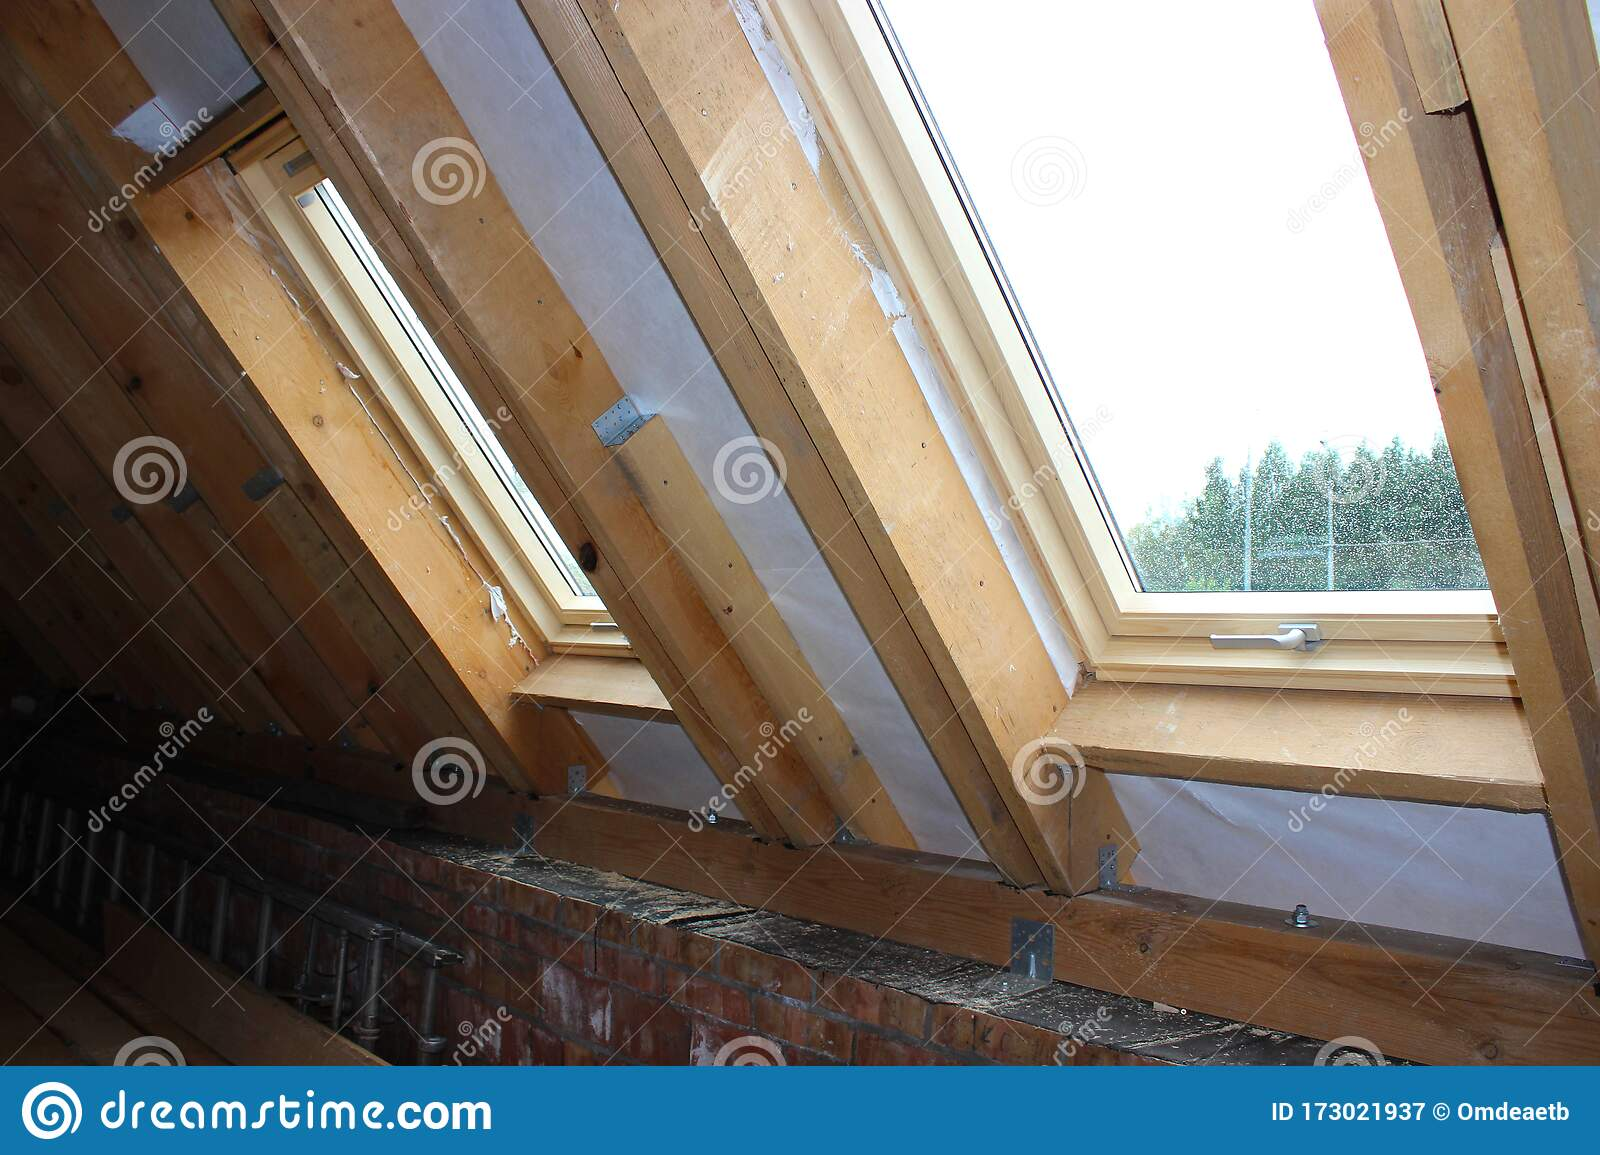 Roofing Construction And Building New House With Skylights New Brick House With Chimney Modern Roof Skylight Attic Skylights Stock Image Image Of Cover Background 173021937